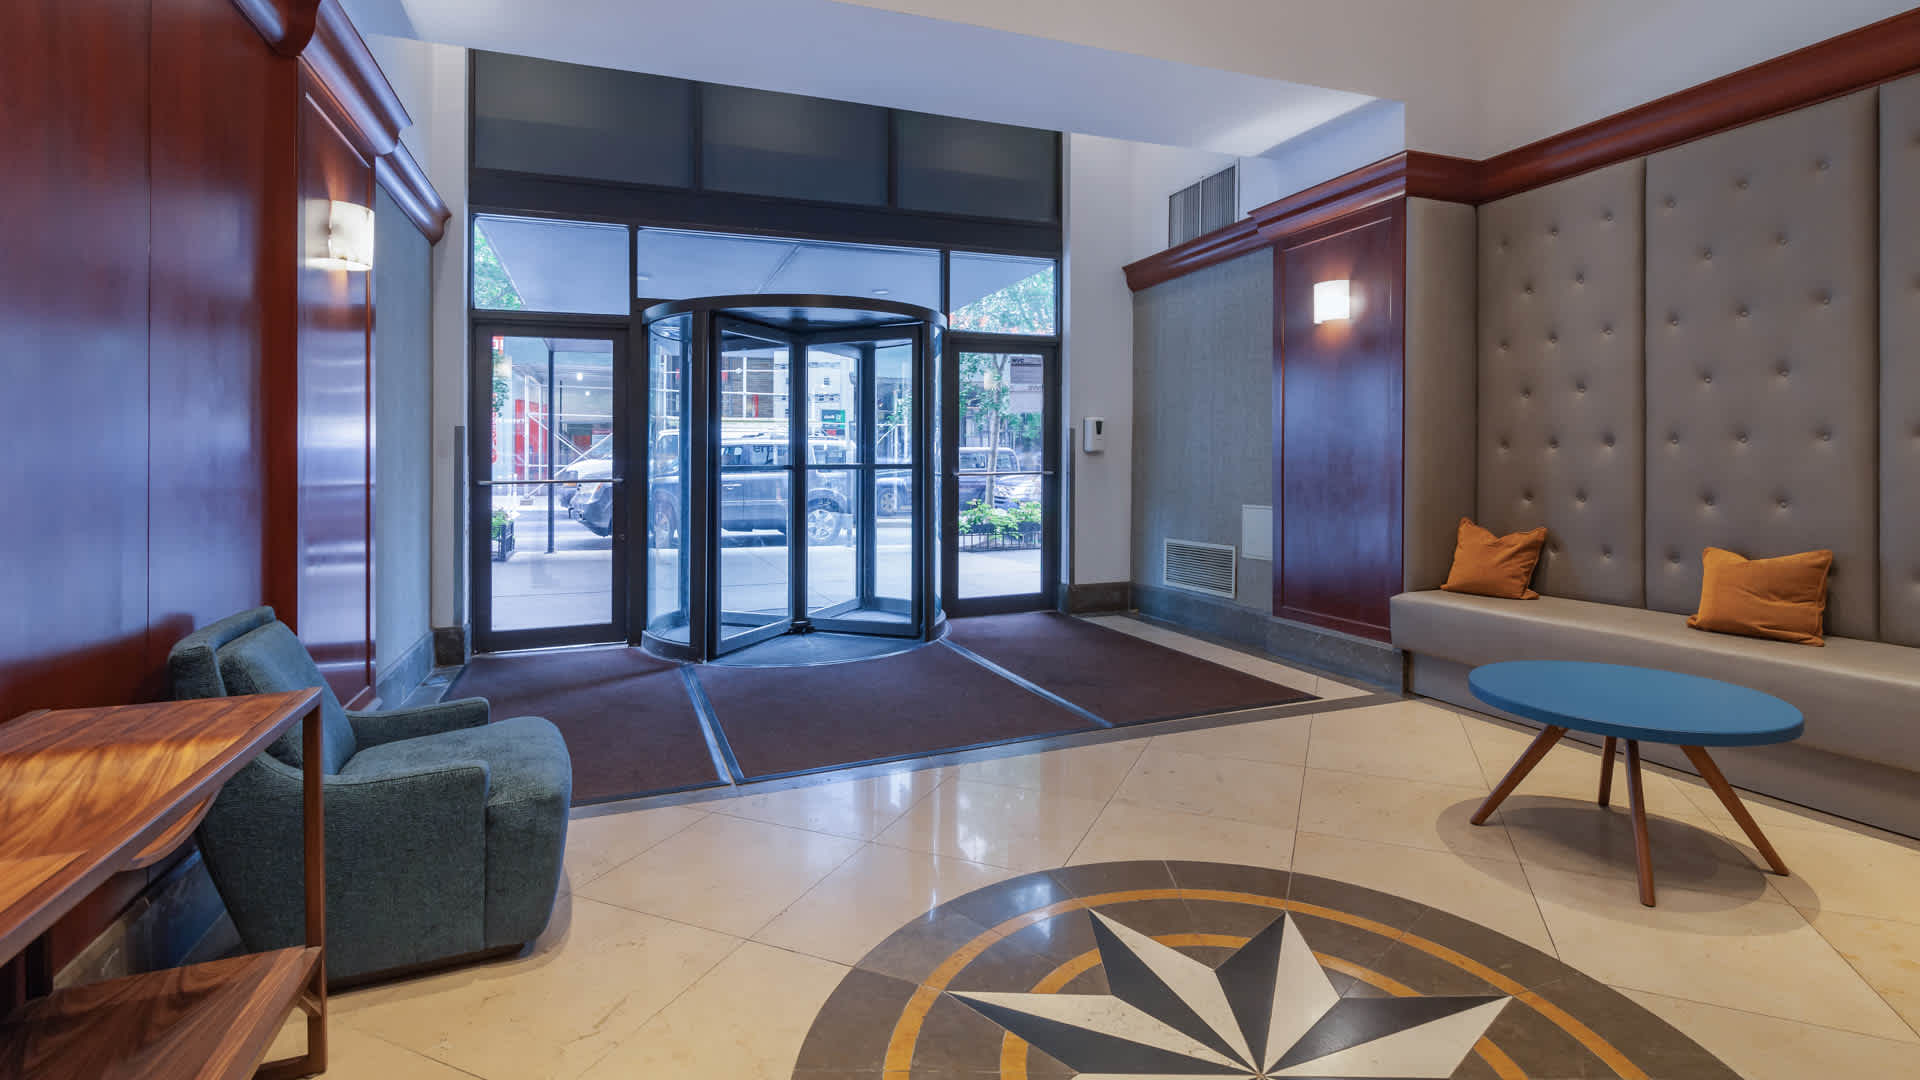 180 montague apartments lobby